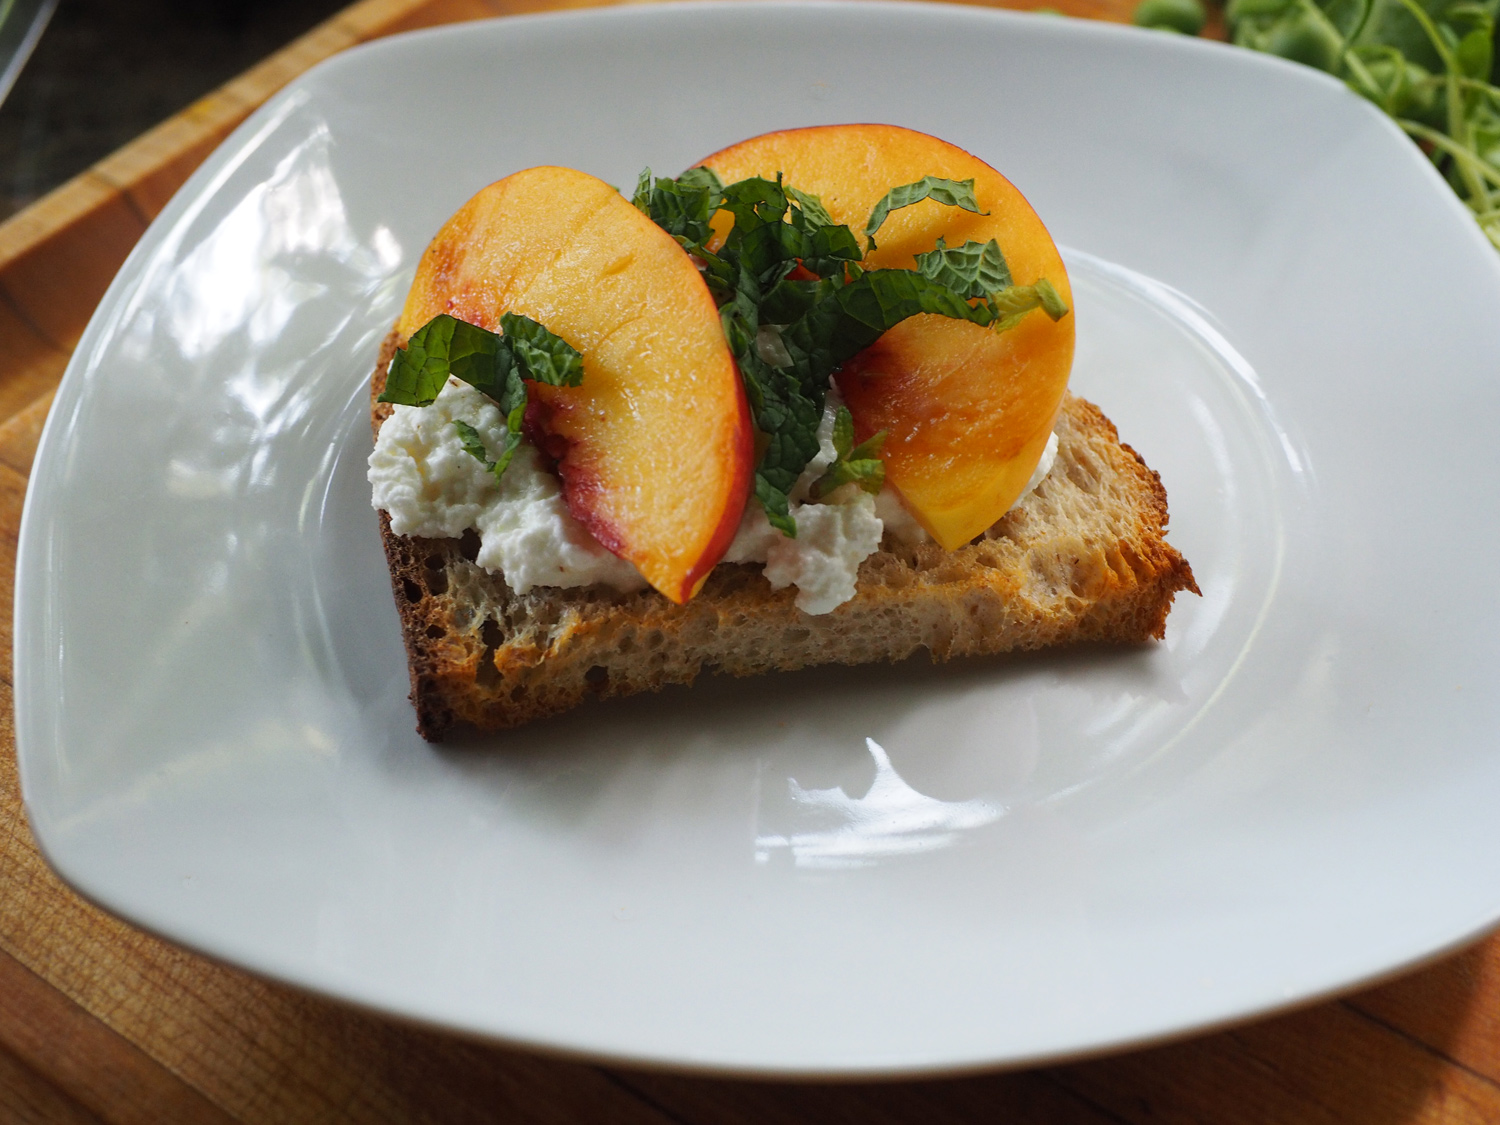 Ricotta & Nectarine crostini with mint syrup.